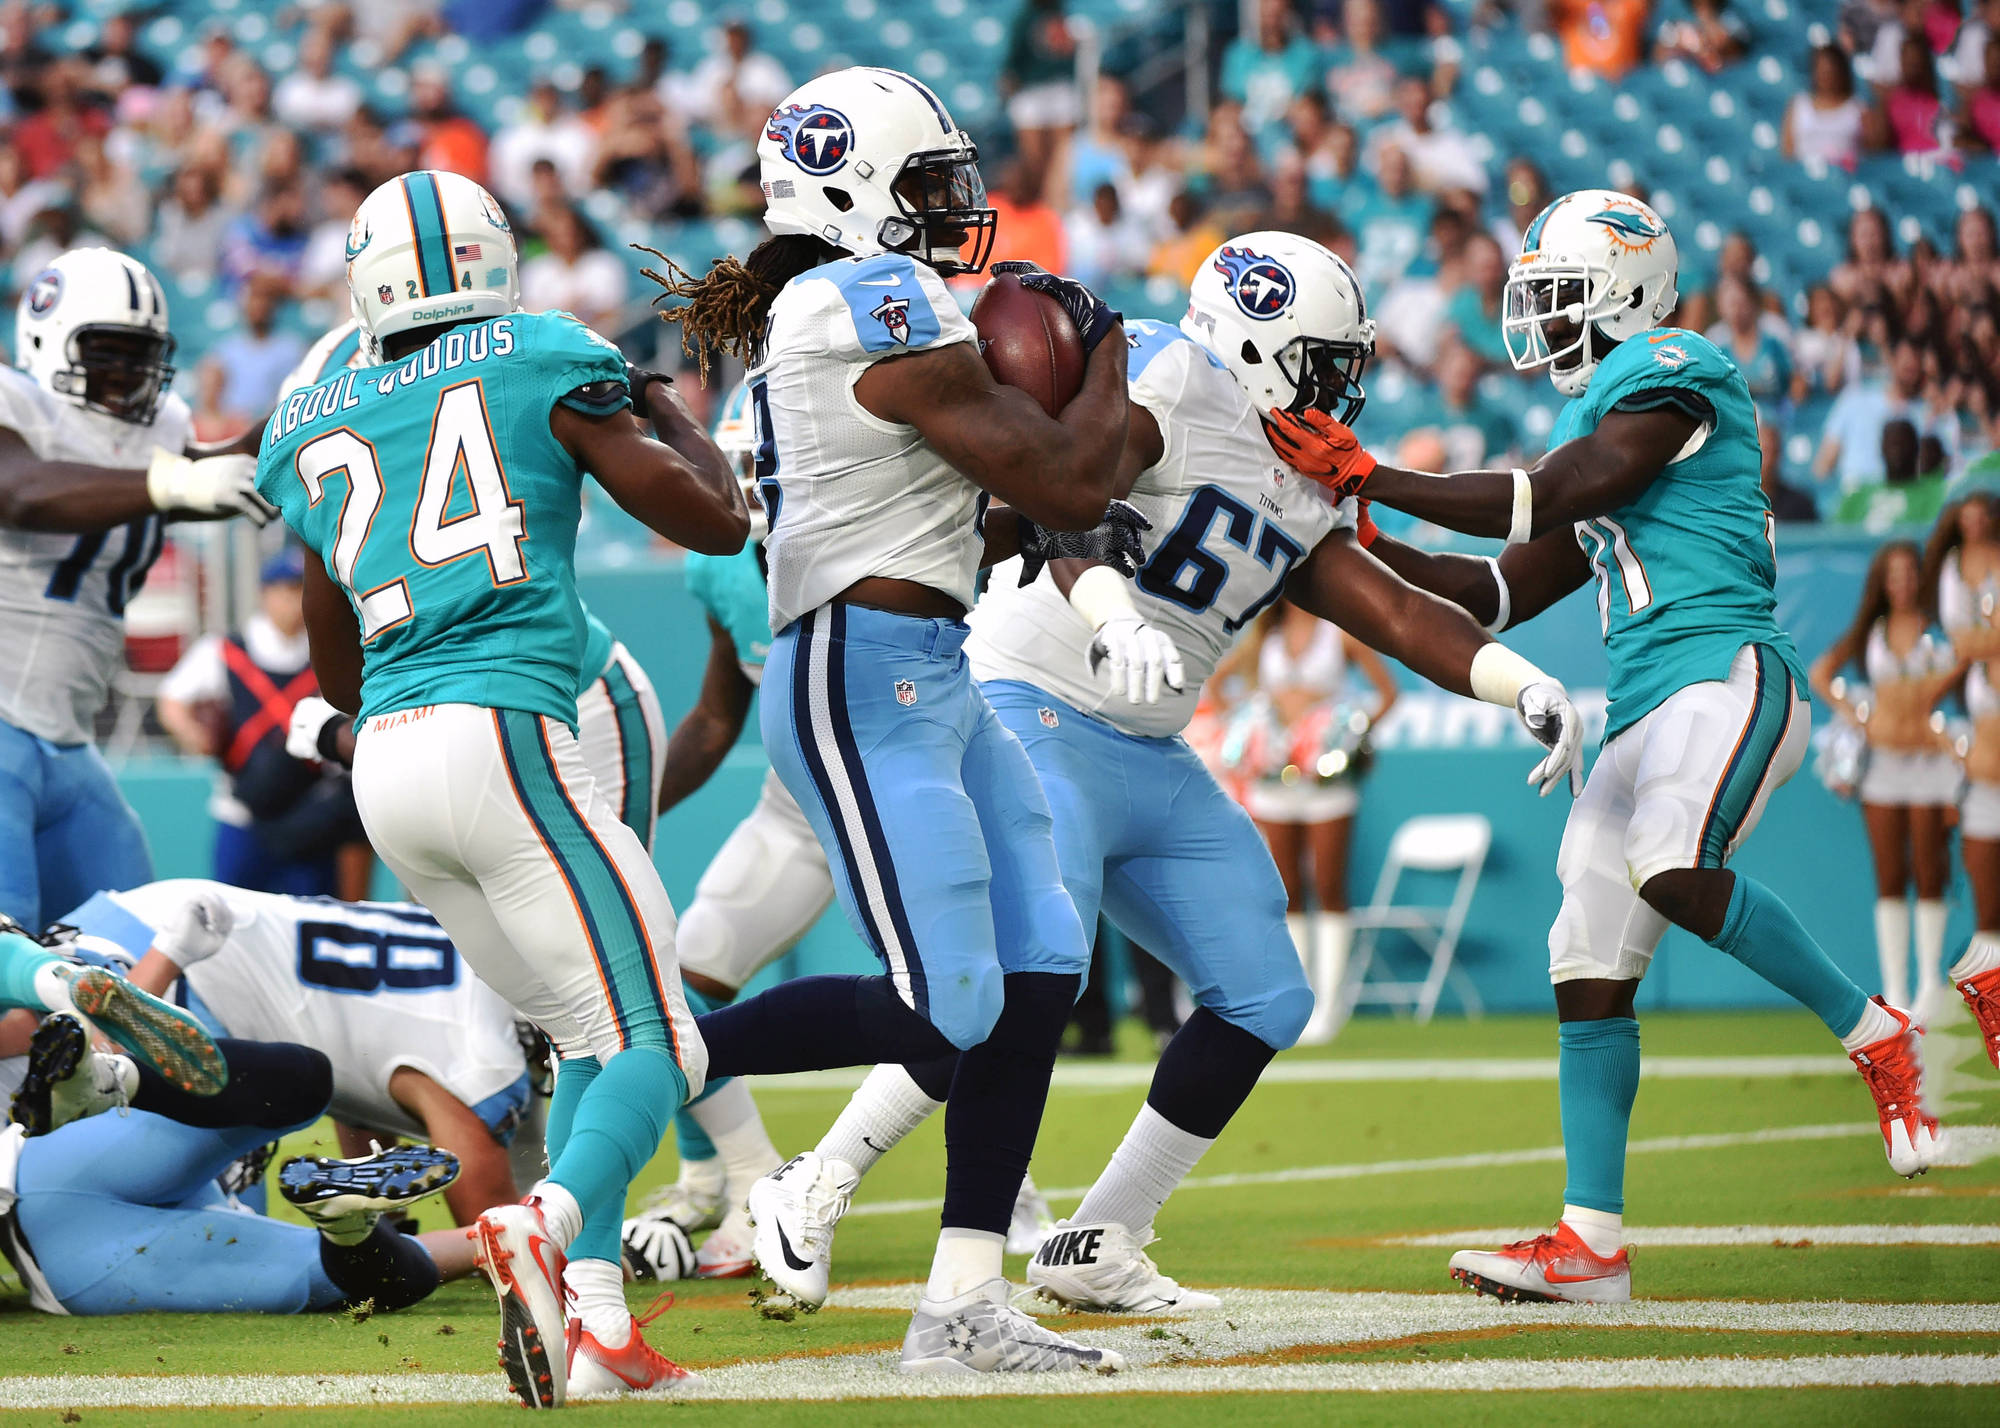 Game Preview: Titans (1-3) and Dolphins (1-3) Set to Battle the Storm in Week Five Matchup